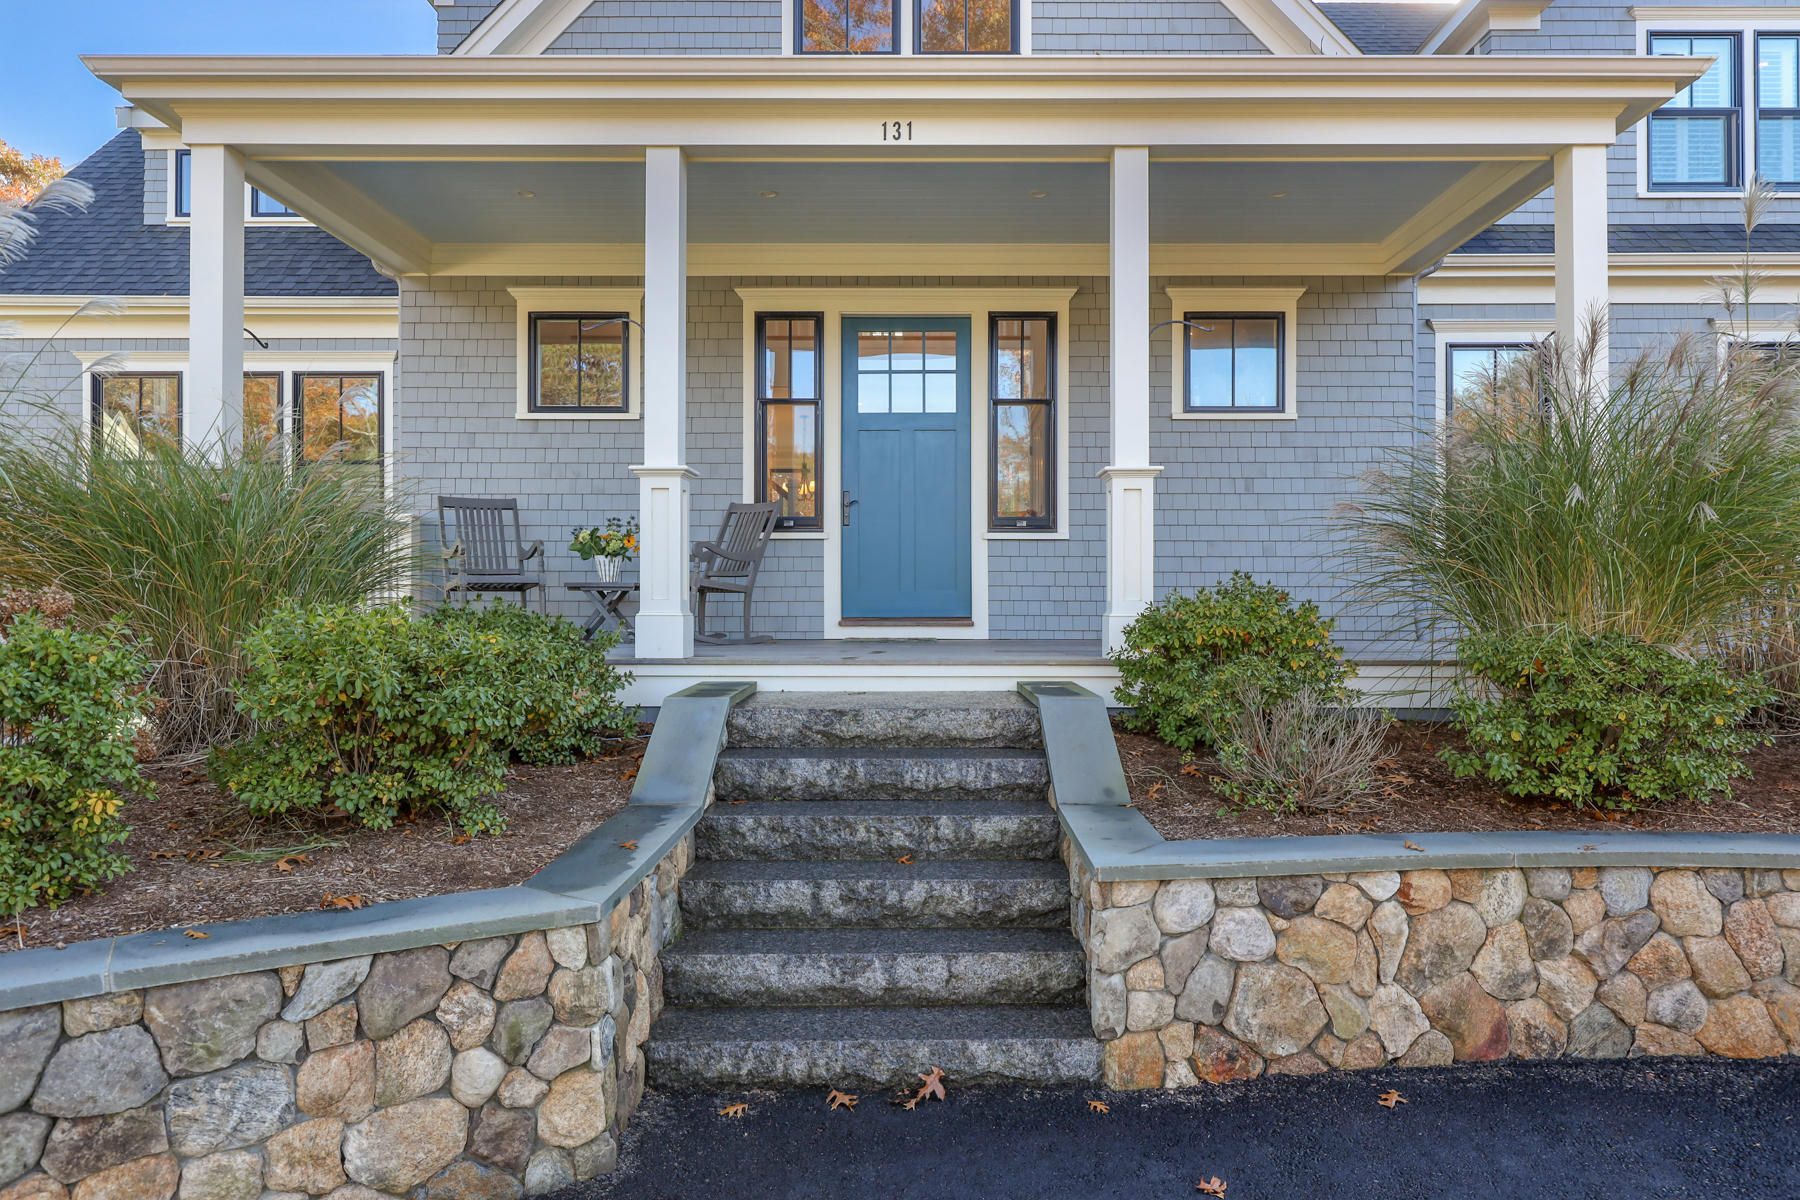 click to view more details 131 Areys Lane, Orleans, MA 02653